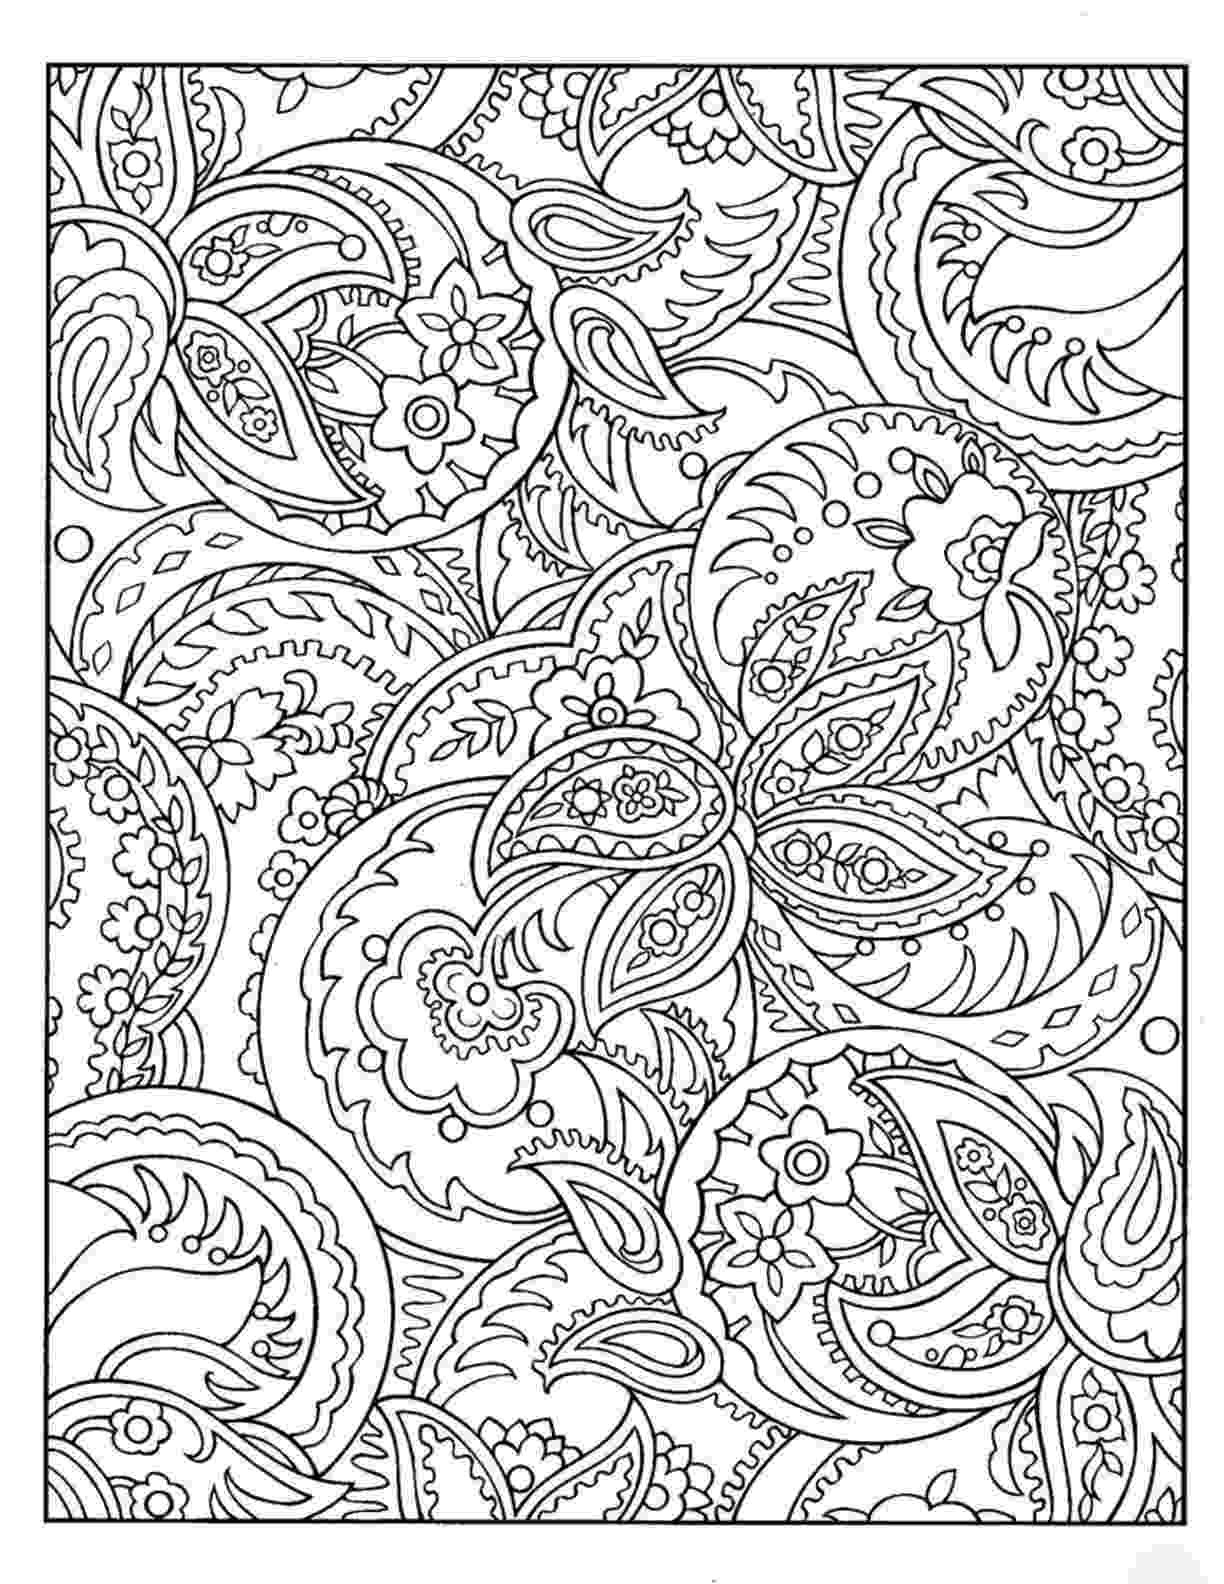 patterns coloring pattern coloring pages best coloring pages for kids patterns coloring 1 1